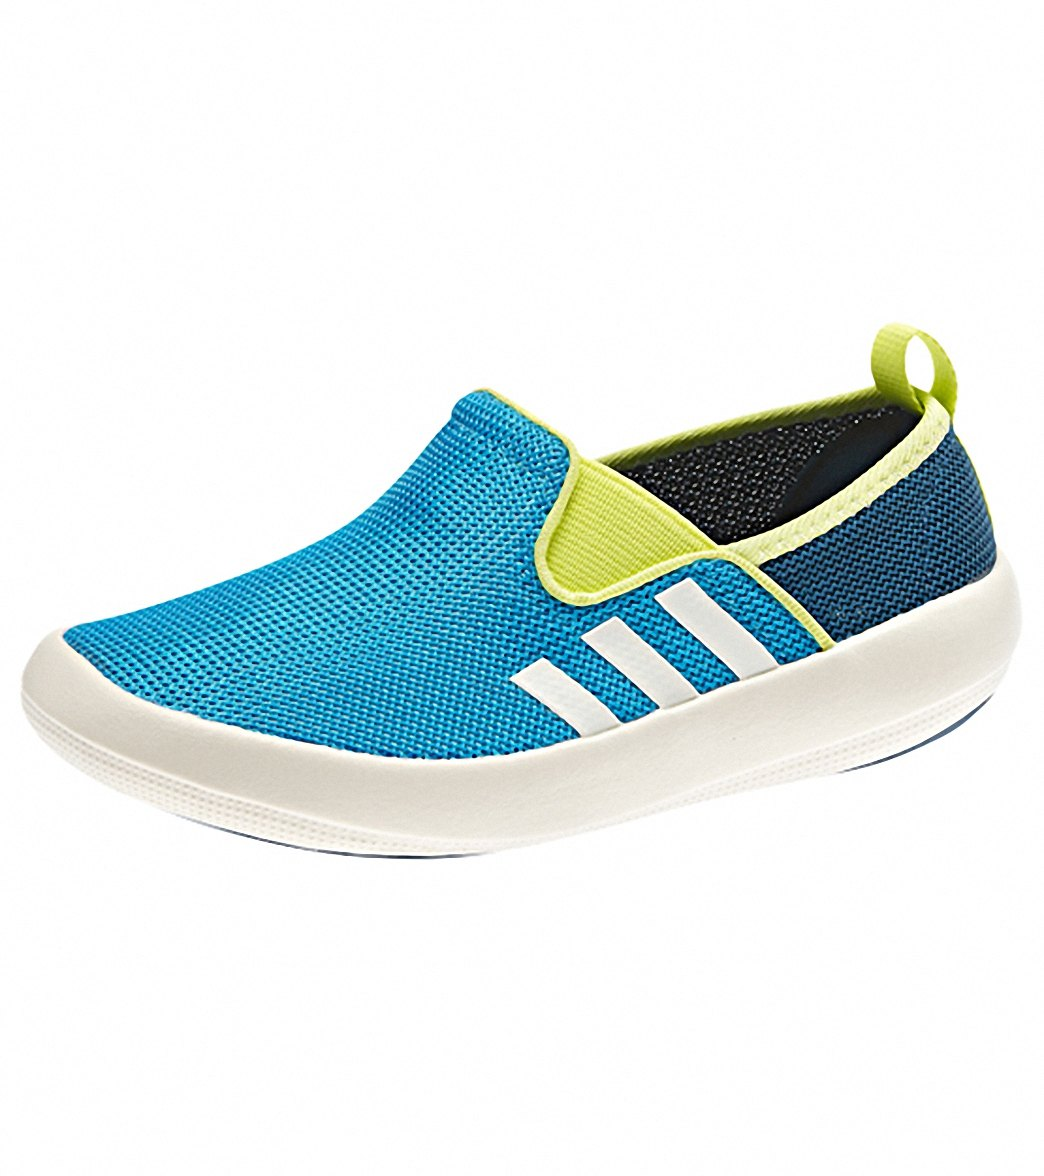 Adidas Boys  Boat Slip On Water Shoes at SwimOutlet.com 65265d815adc